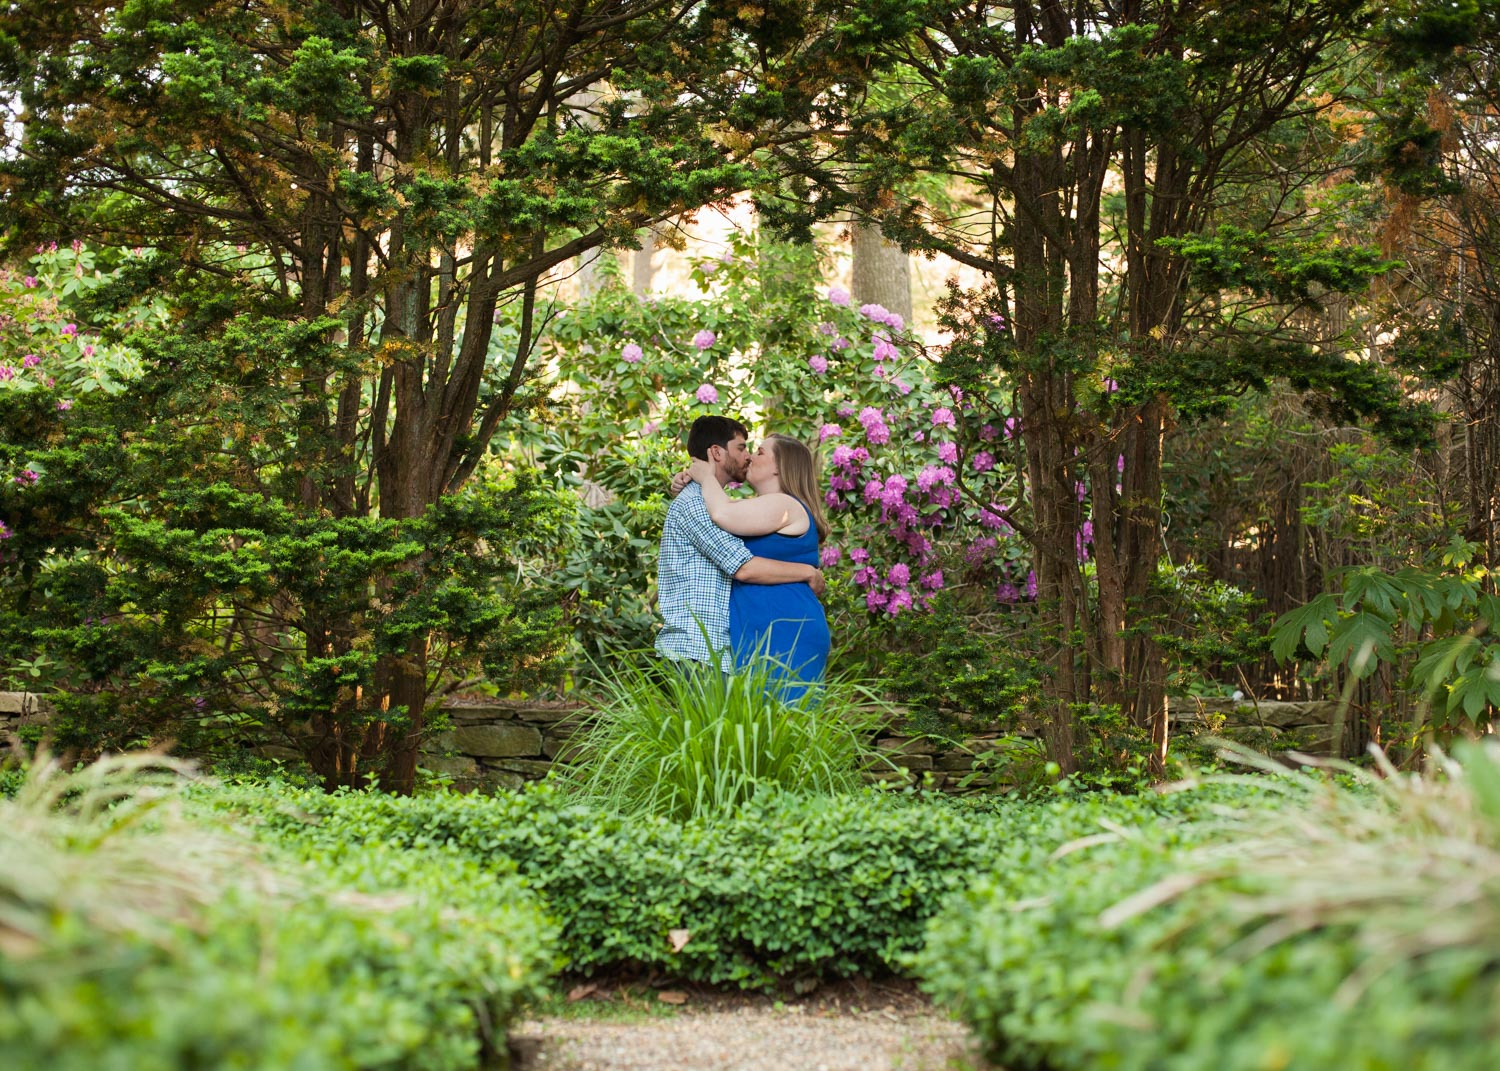 A couple wearing blue for their engagement photos kisses in the gardens of Higgins House in Worcester, MA.